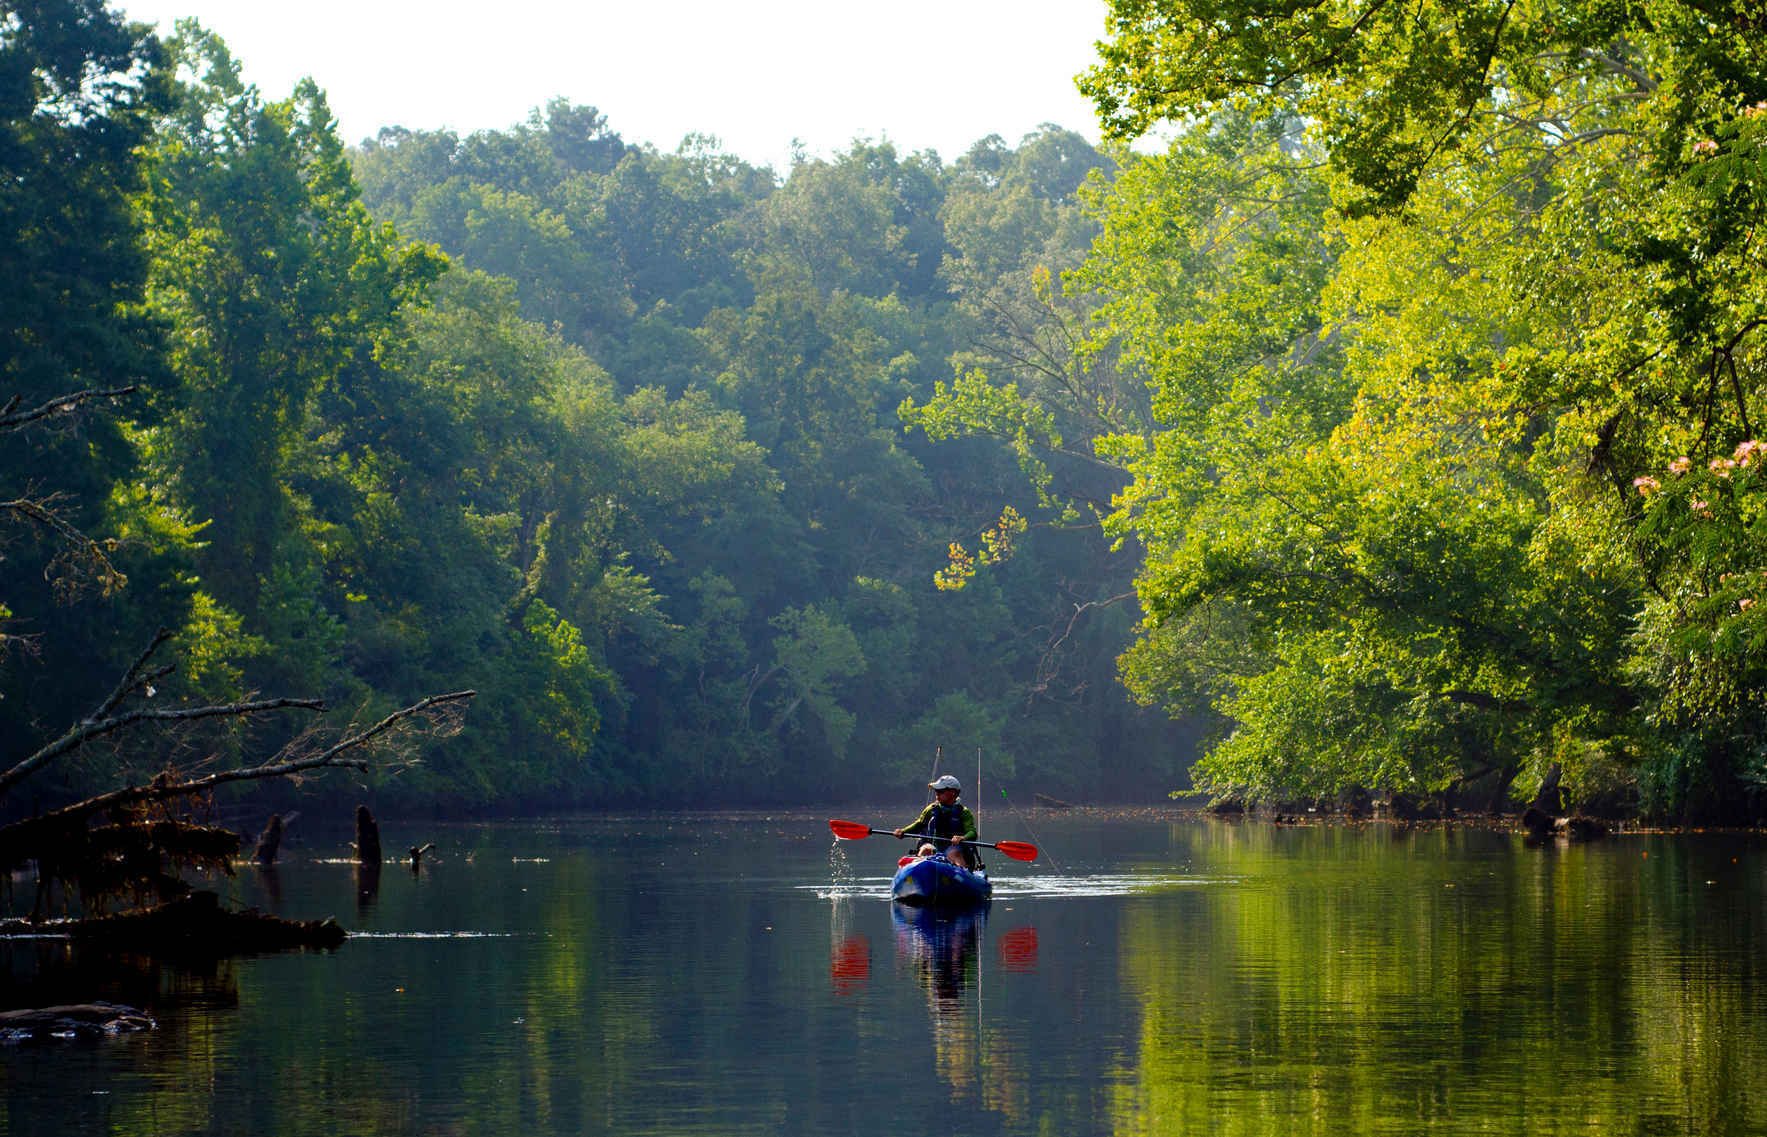 Donate to preserve our Chattahoochee image